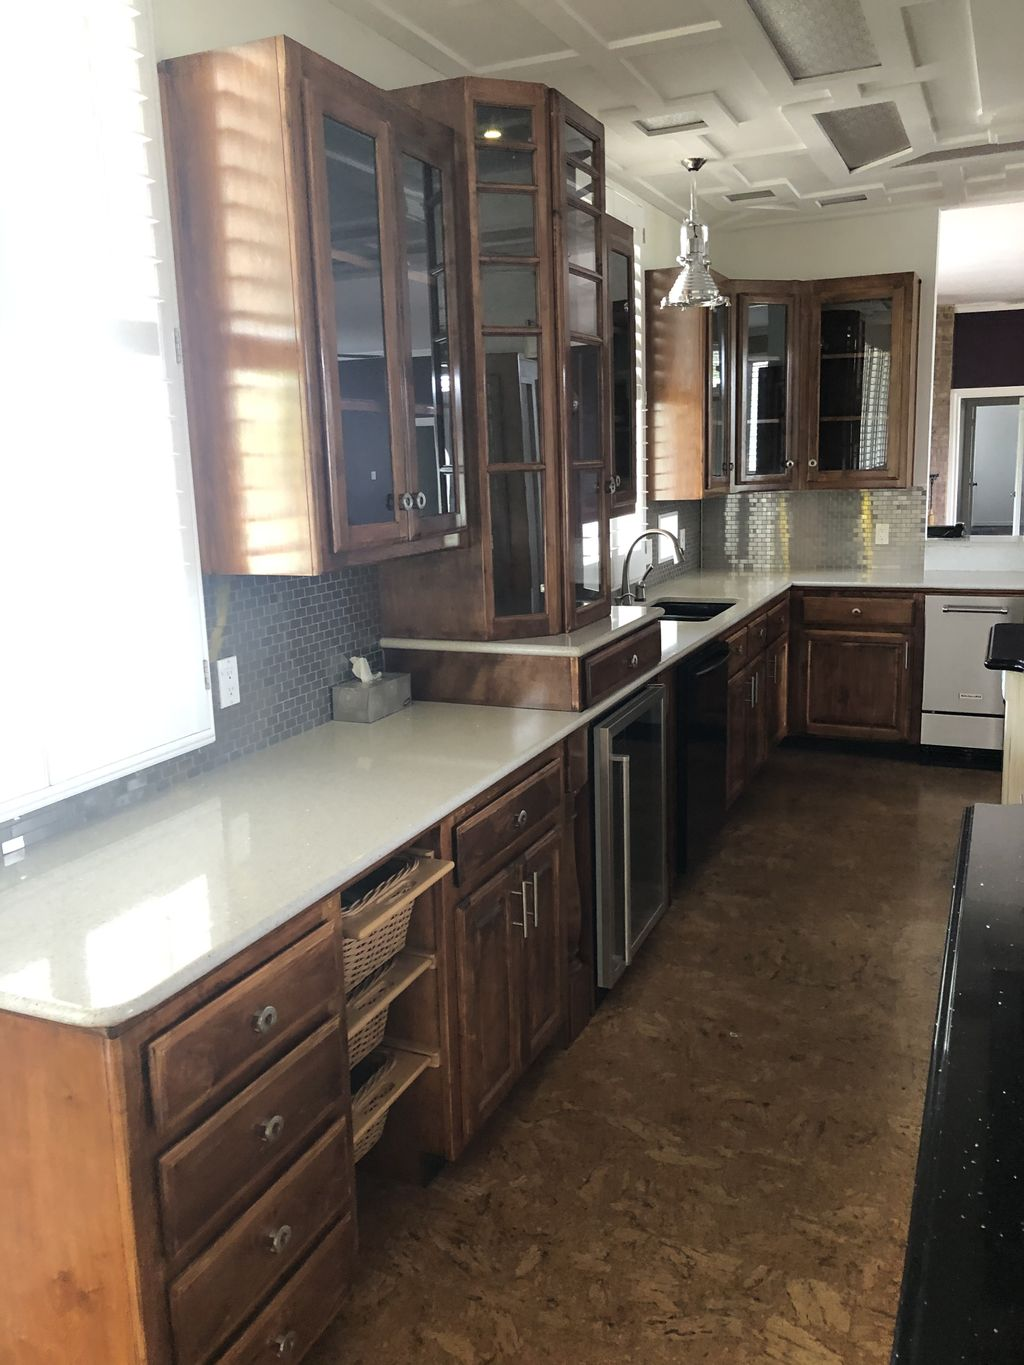 Cabinet and kitchen paint